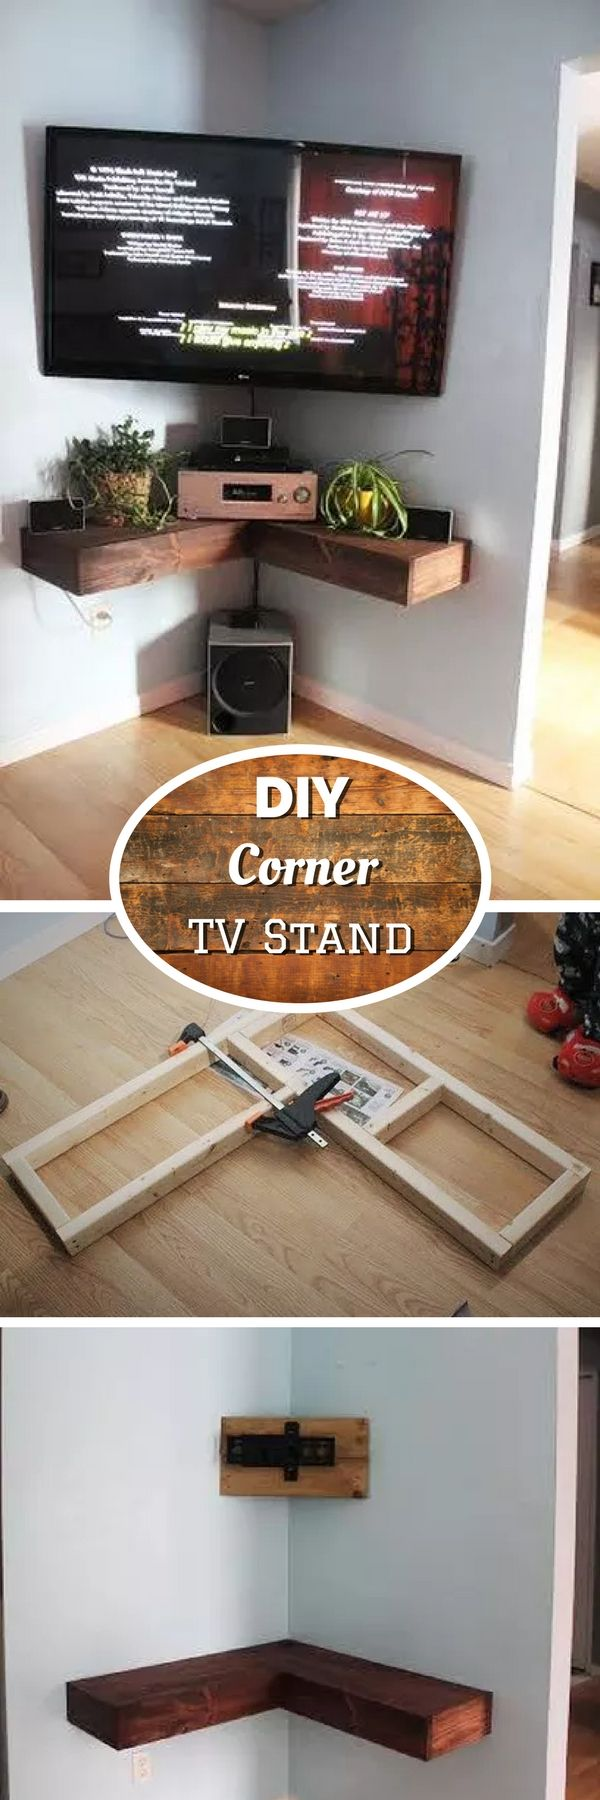 Check out how to build a DIY corner TV stand @istandarddesign